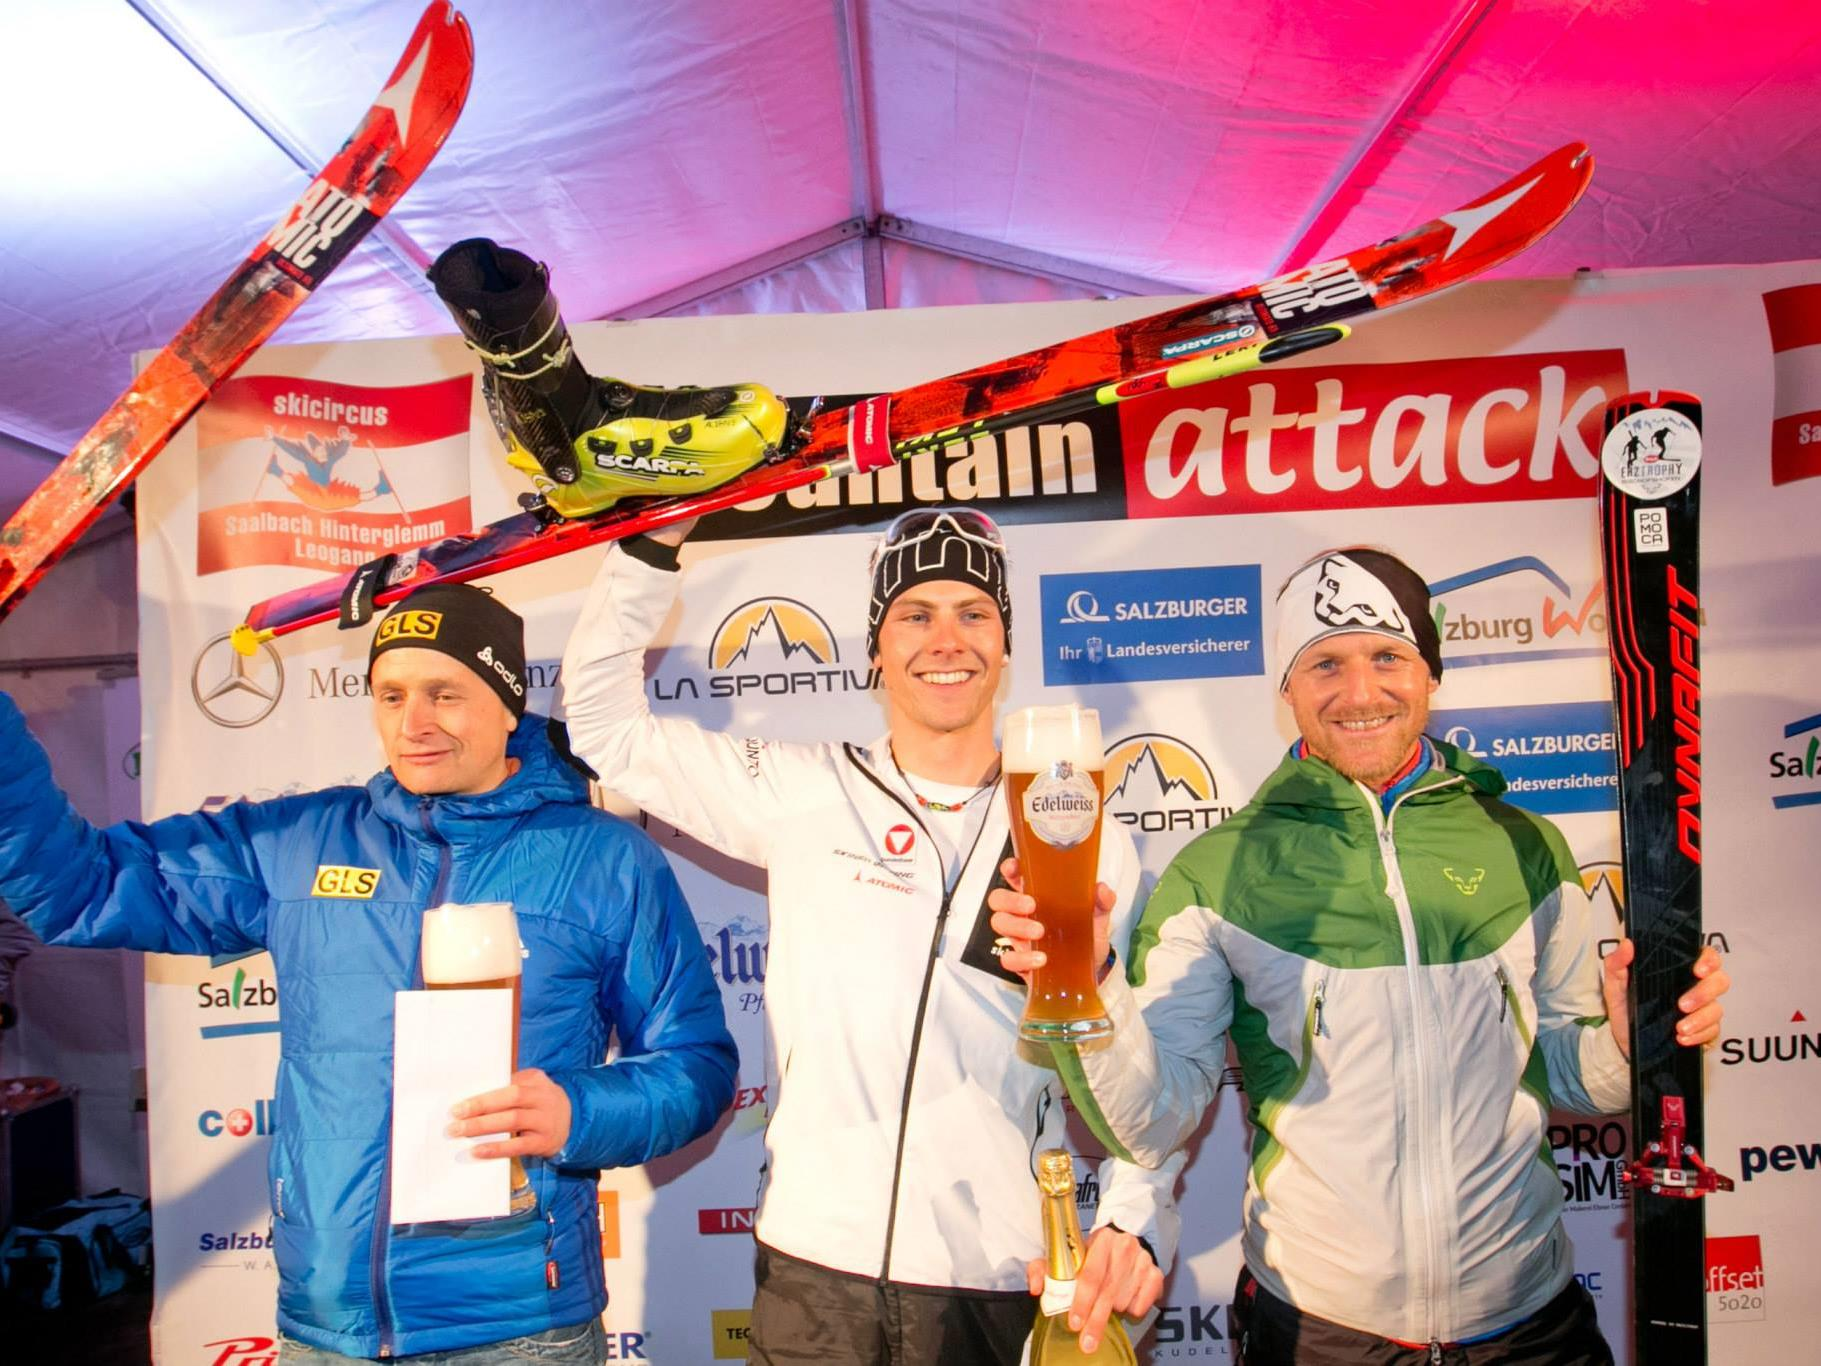 Der St. Gallenkircher Daniel Zugg gewinnt sensationell den Mountain Attack in Saalbach.